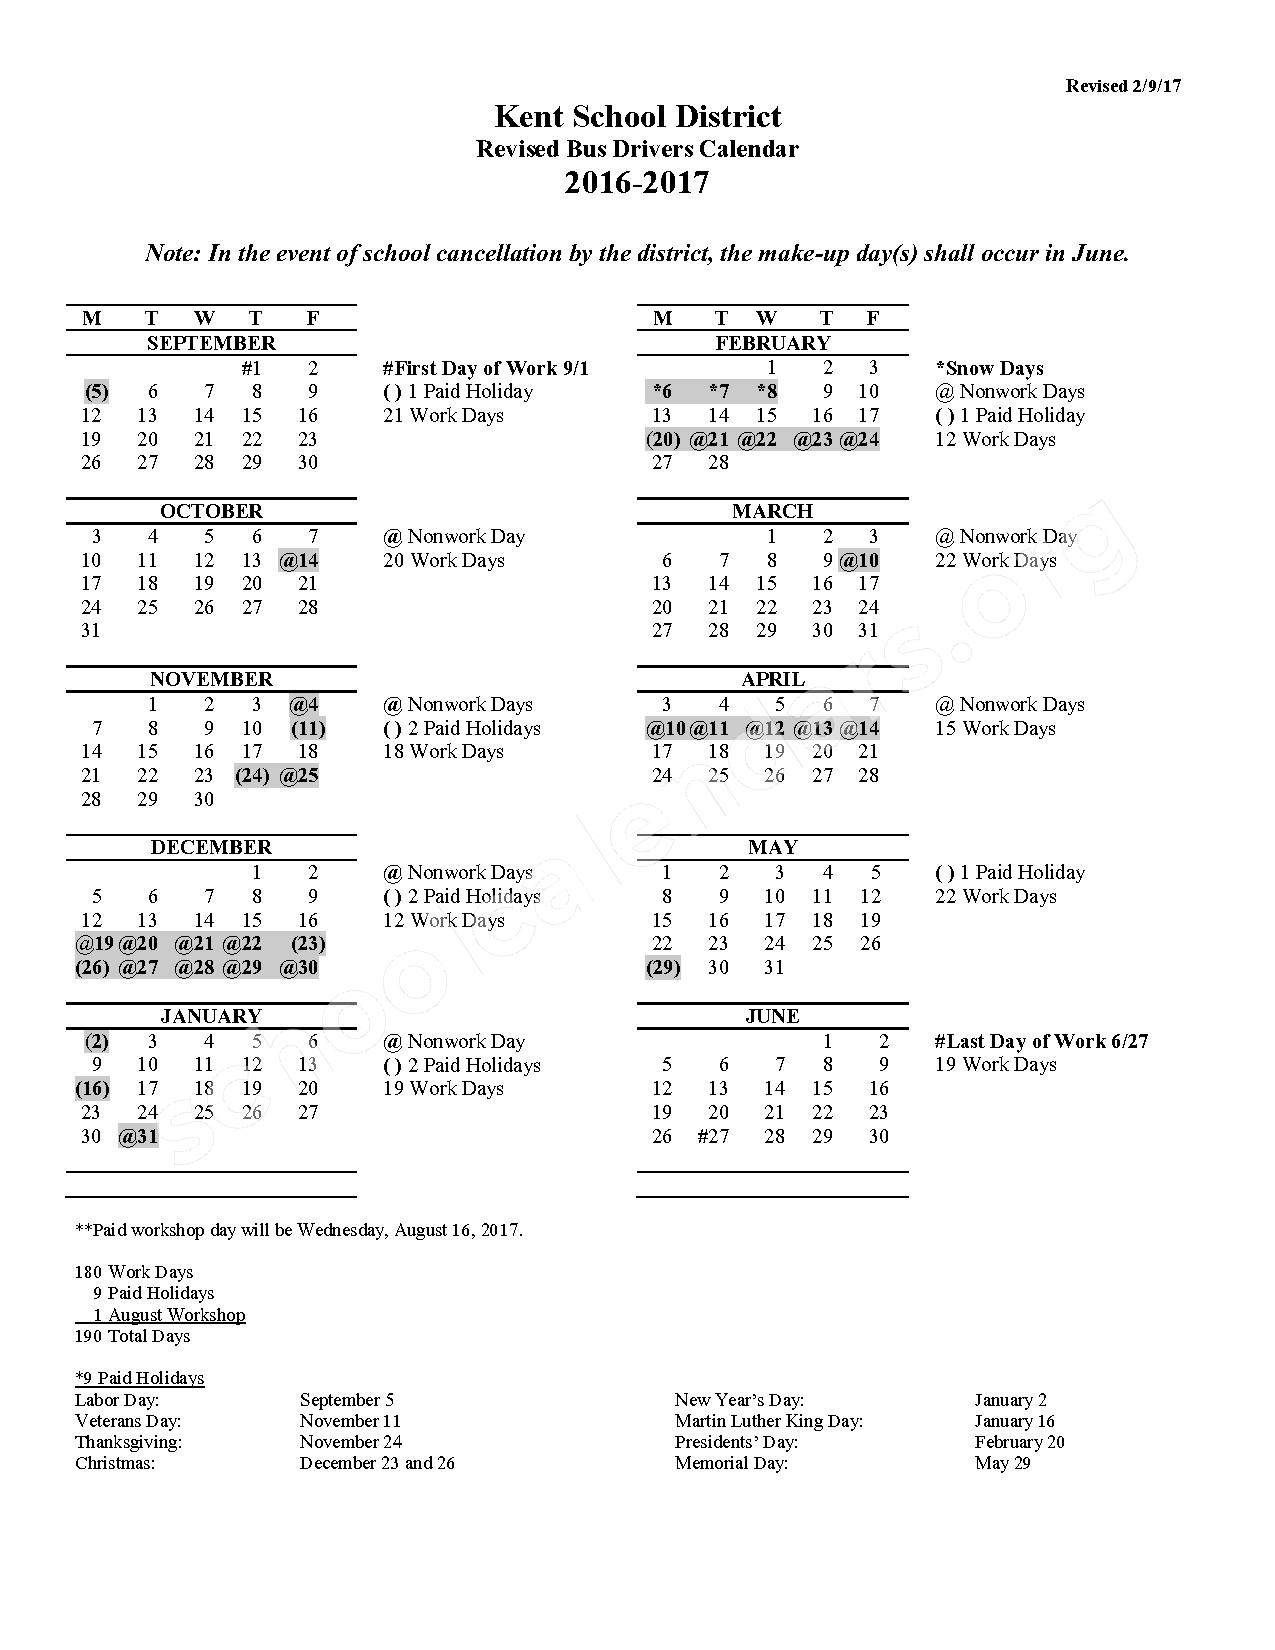 2016 - 2017 Bus Drivers Calendar (Revised) – Meadow Ridge Elementary School – page 1